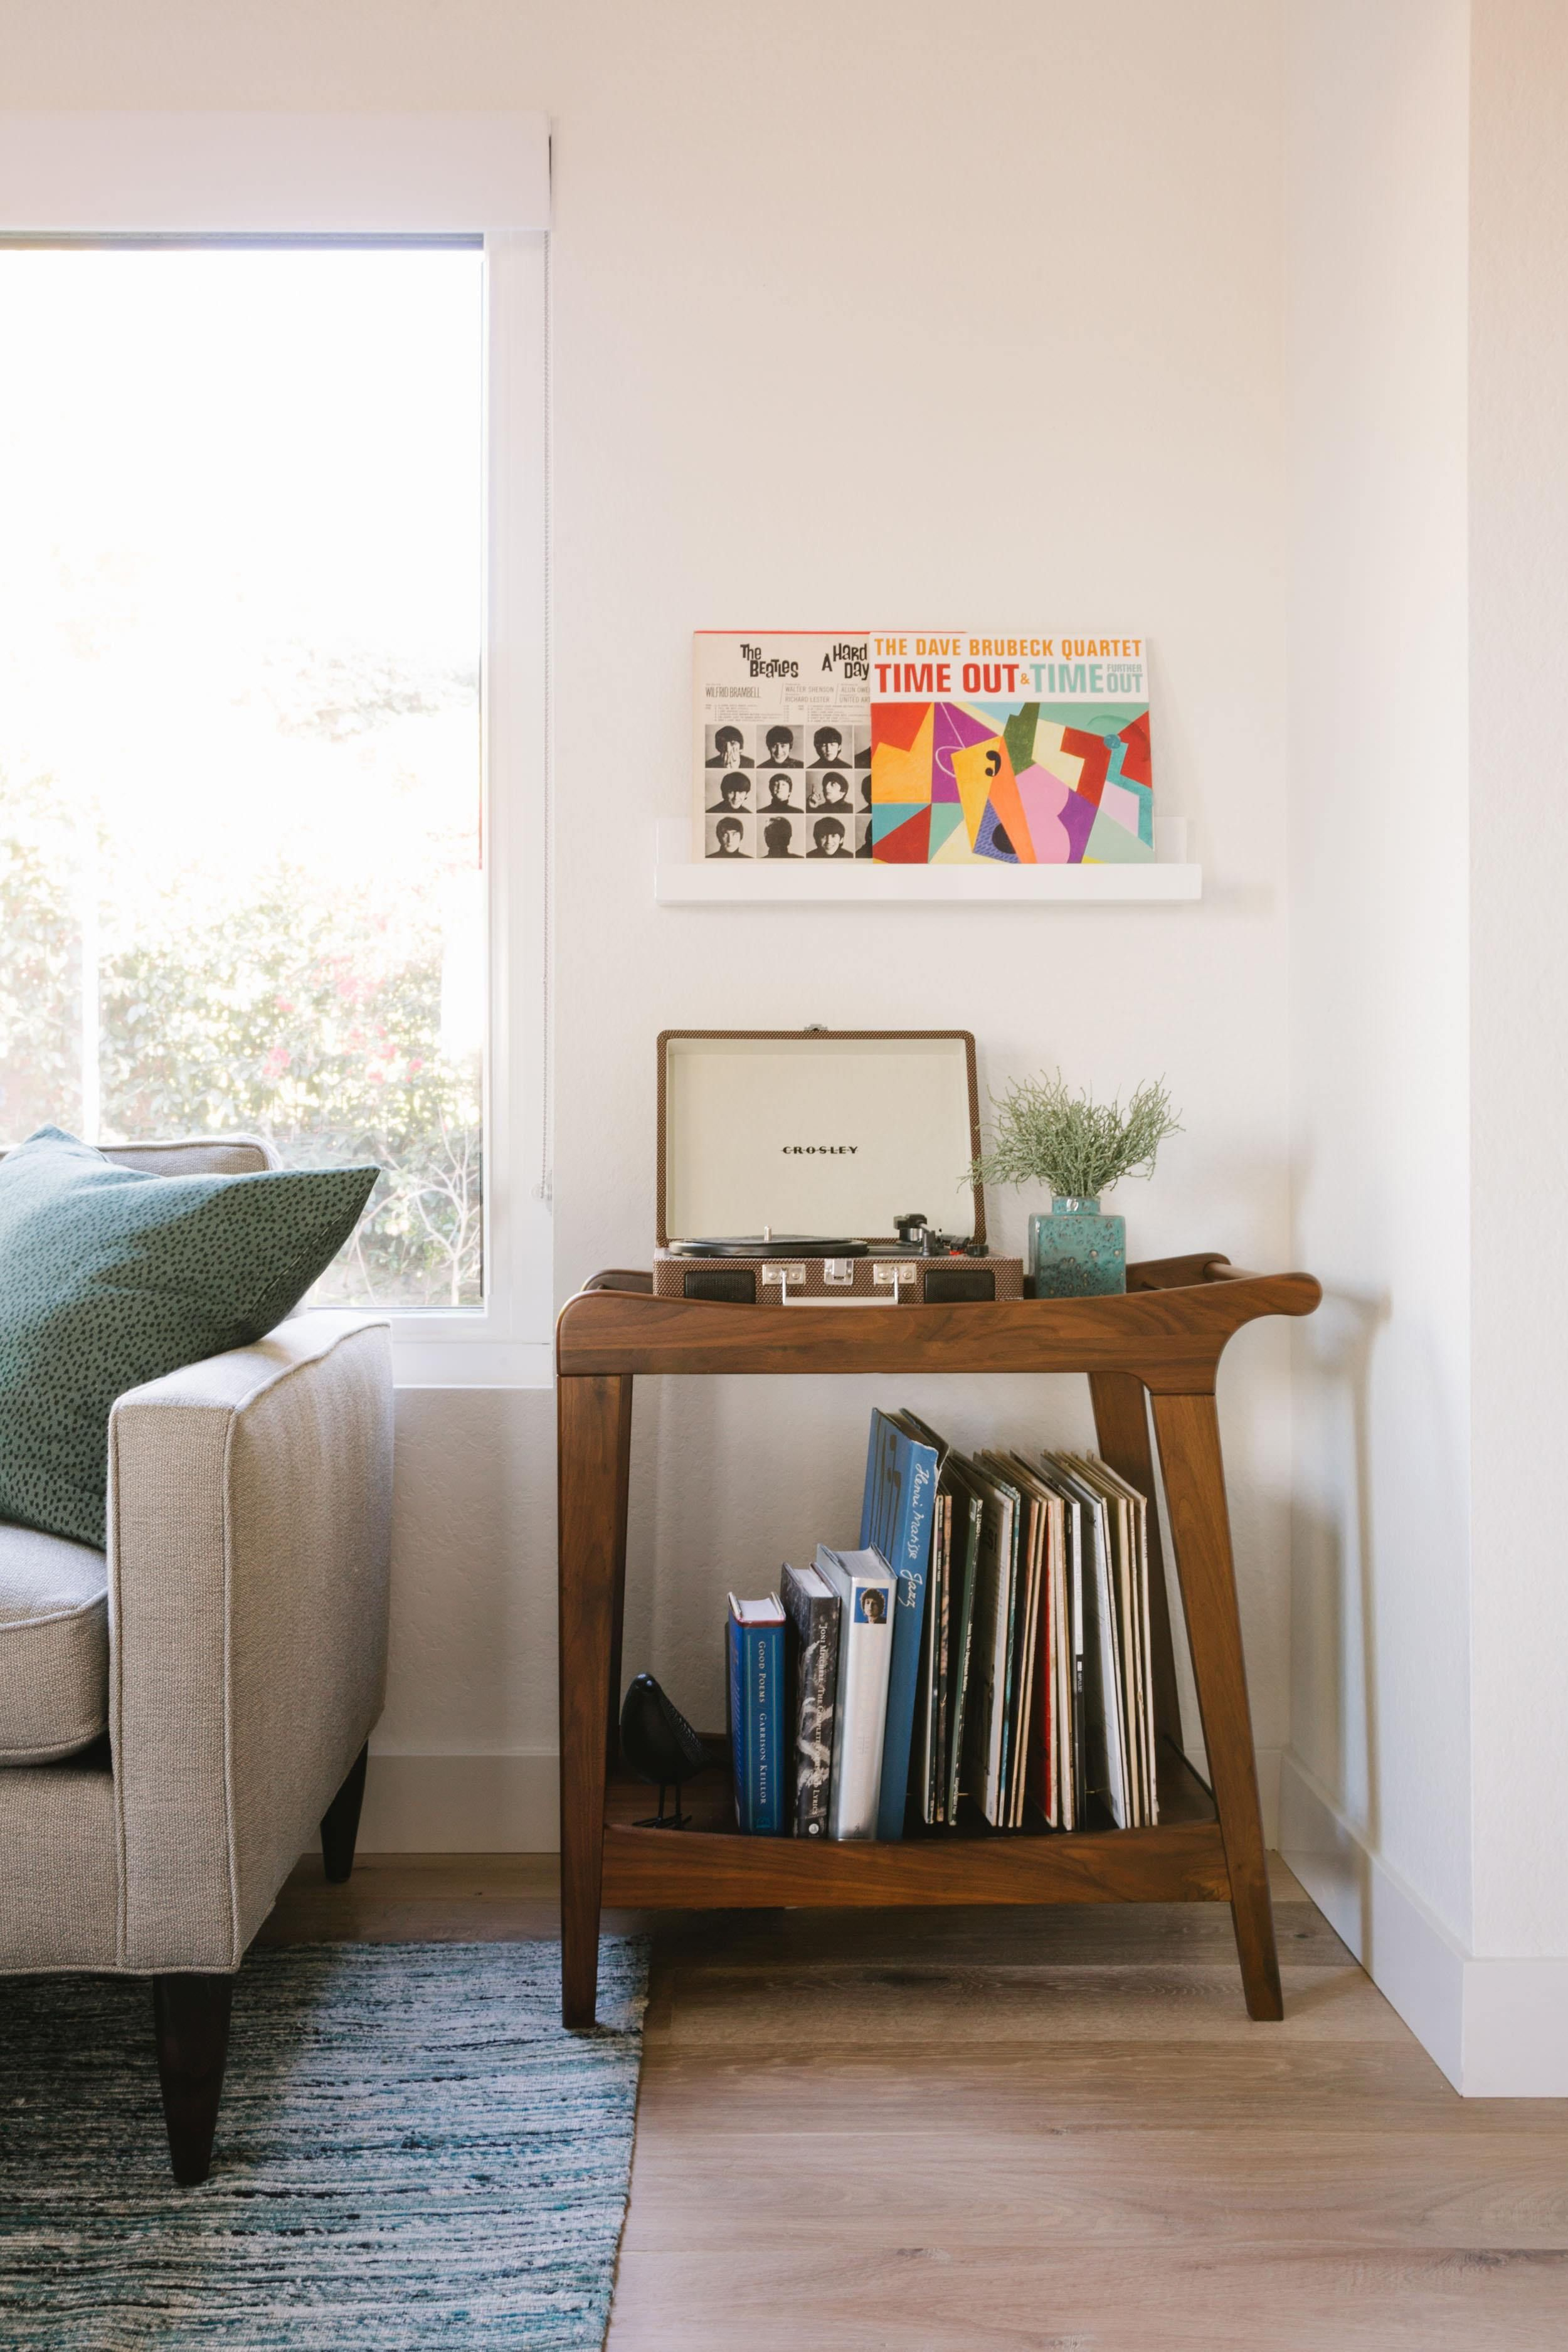 House Tour A Mid Century Modern Inspired Home Get The Look Emily Henderson Home Decor Retro Home Decor Home Decor Bedroom #record #player #in #living #room